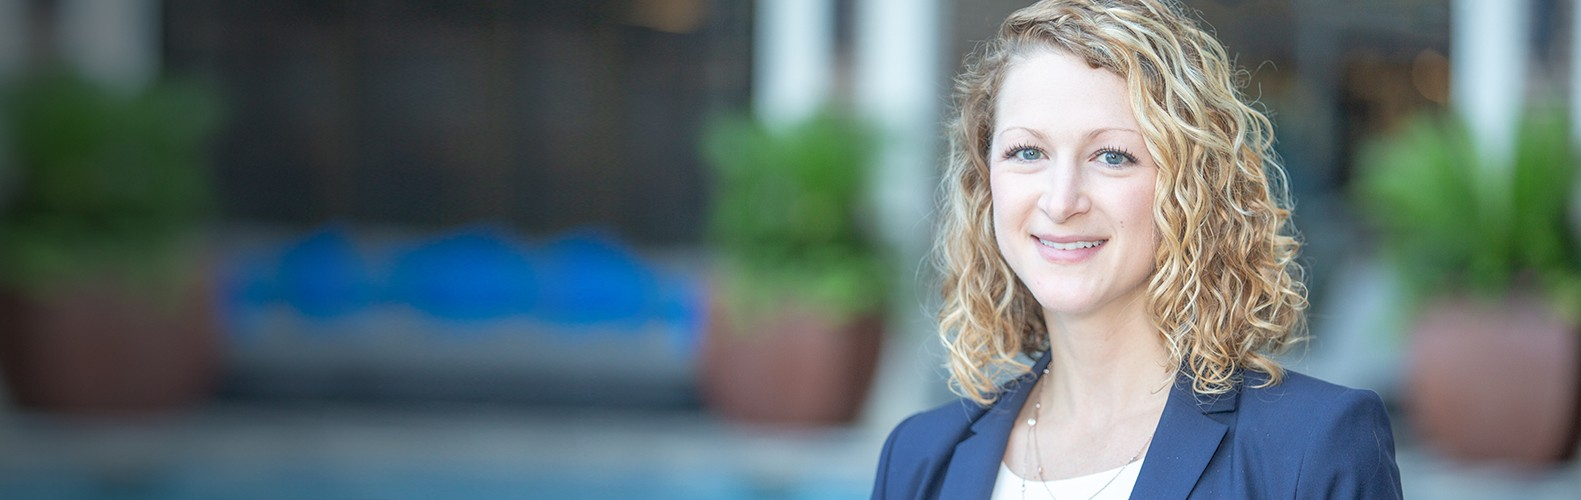 EY - Connect Summer 2018 - Rebecca Feickert: How skilled